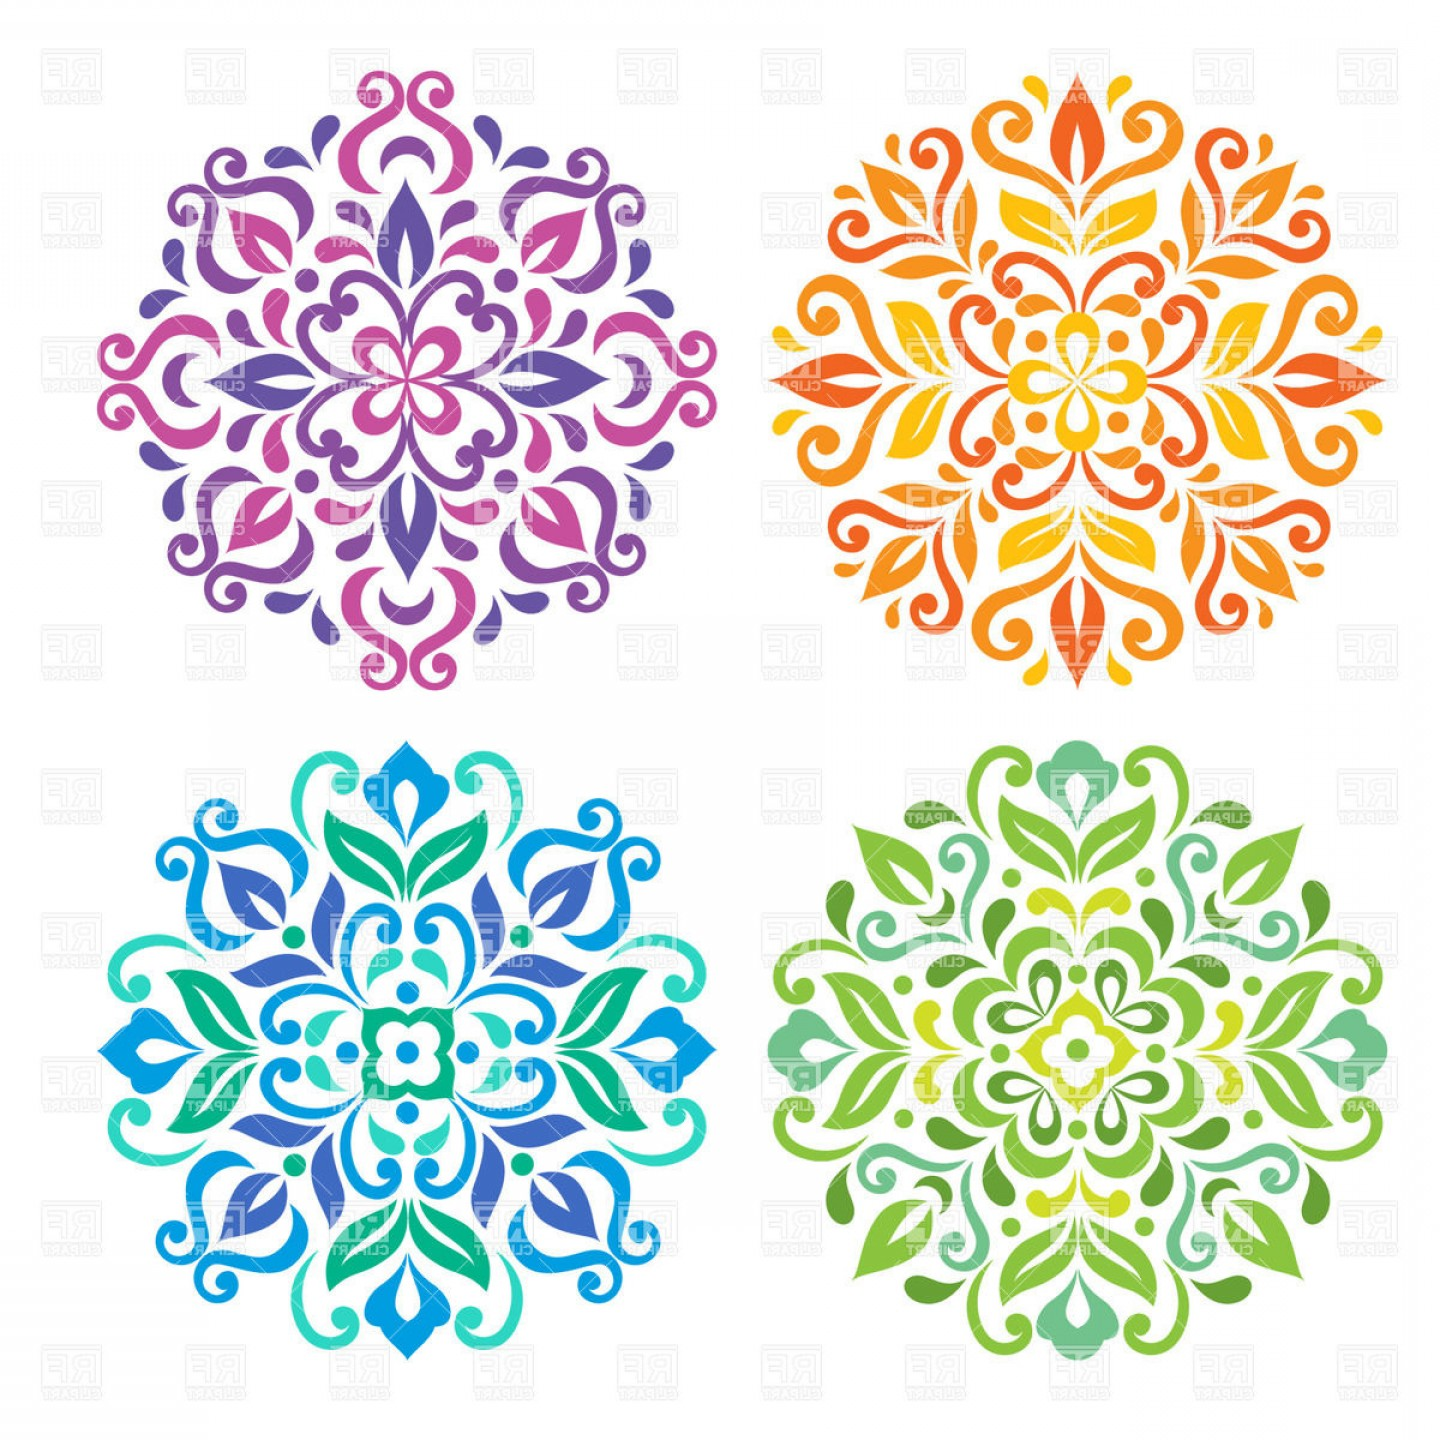 Mandala vector clipart png freeuse library Colorful Round Floral Mandalas Vector Clipart | CQRecords png freeuse library